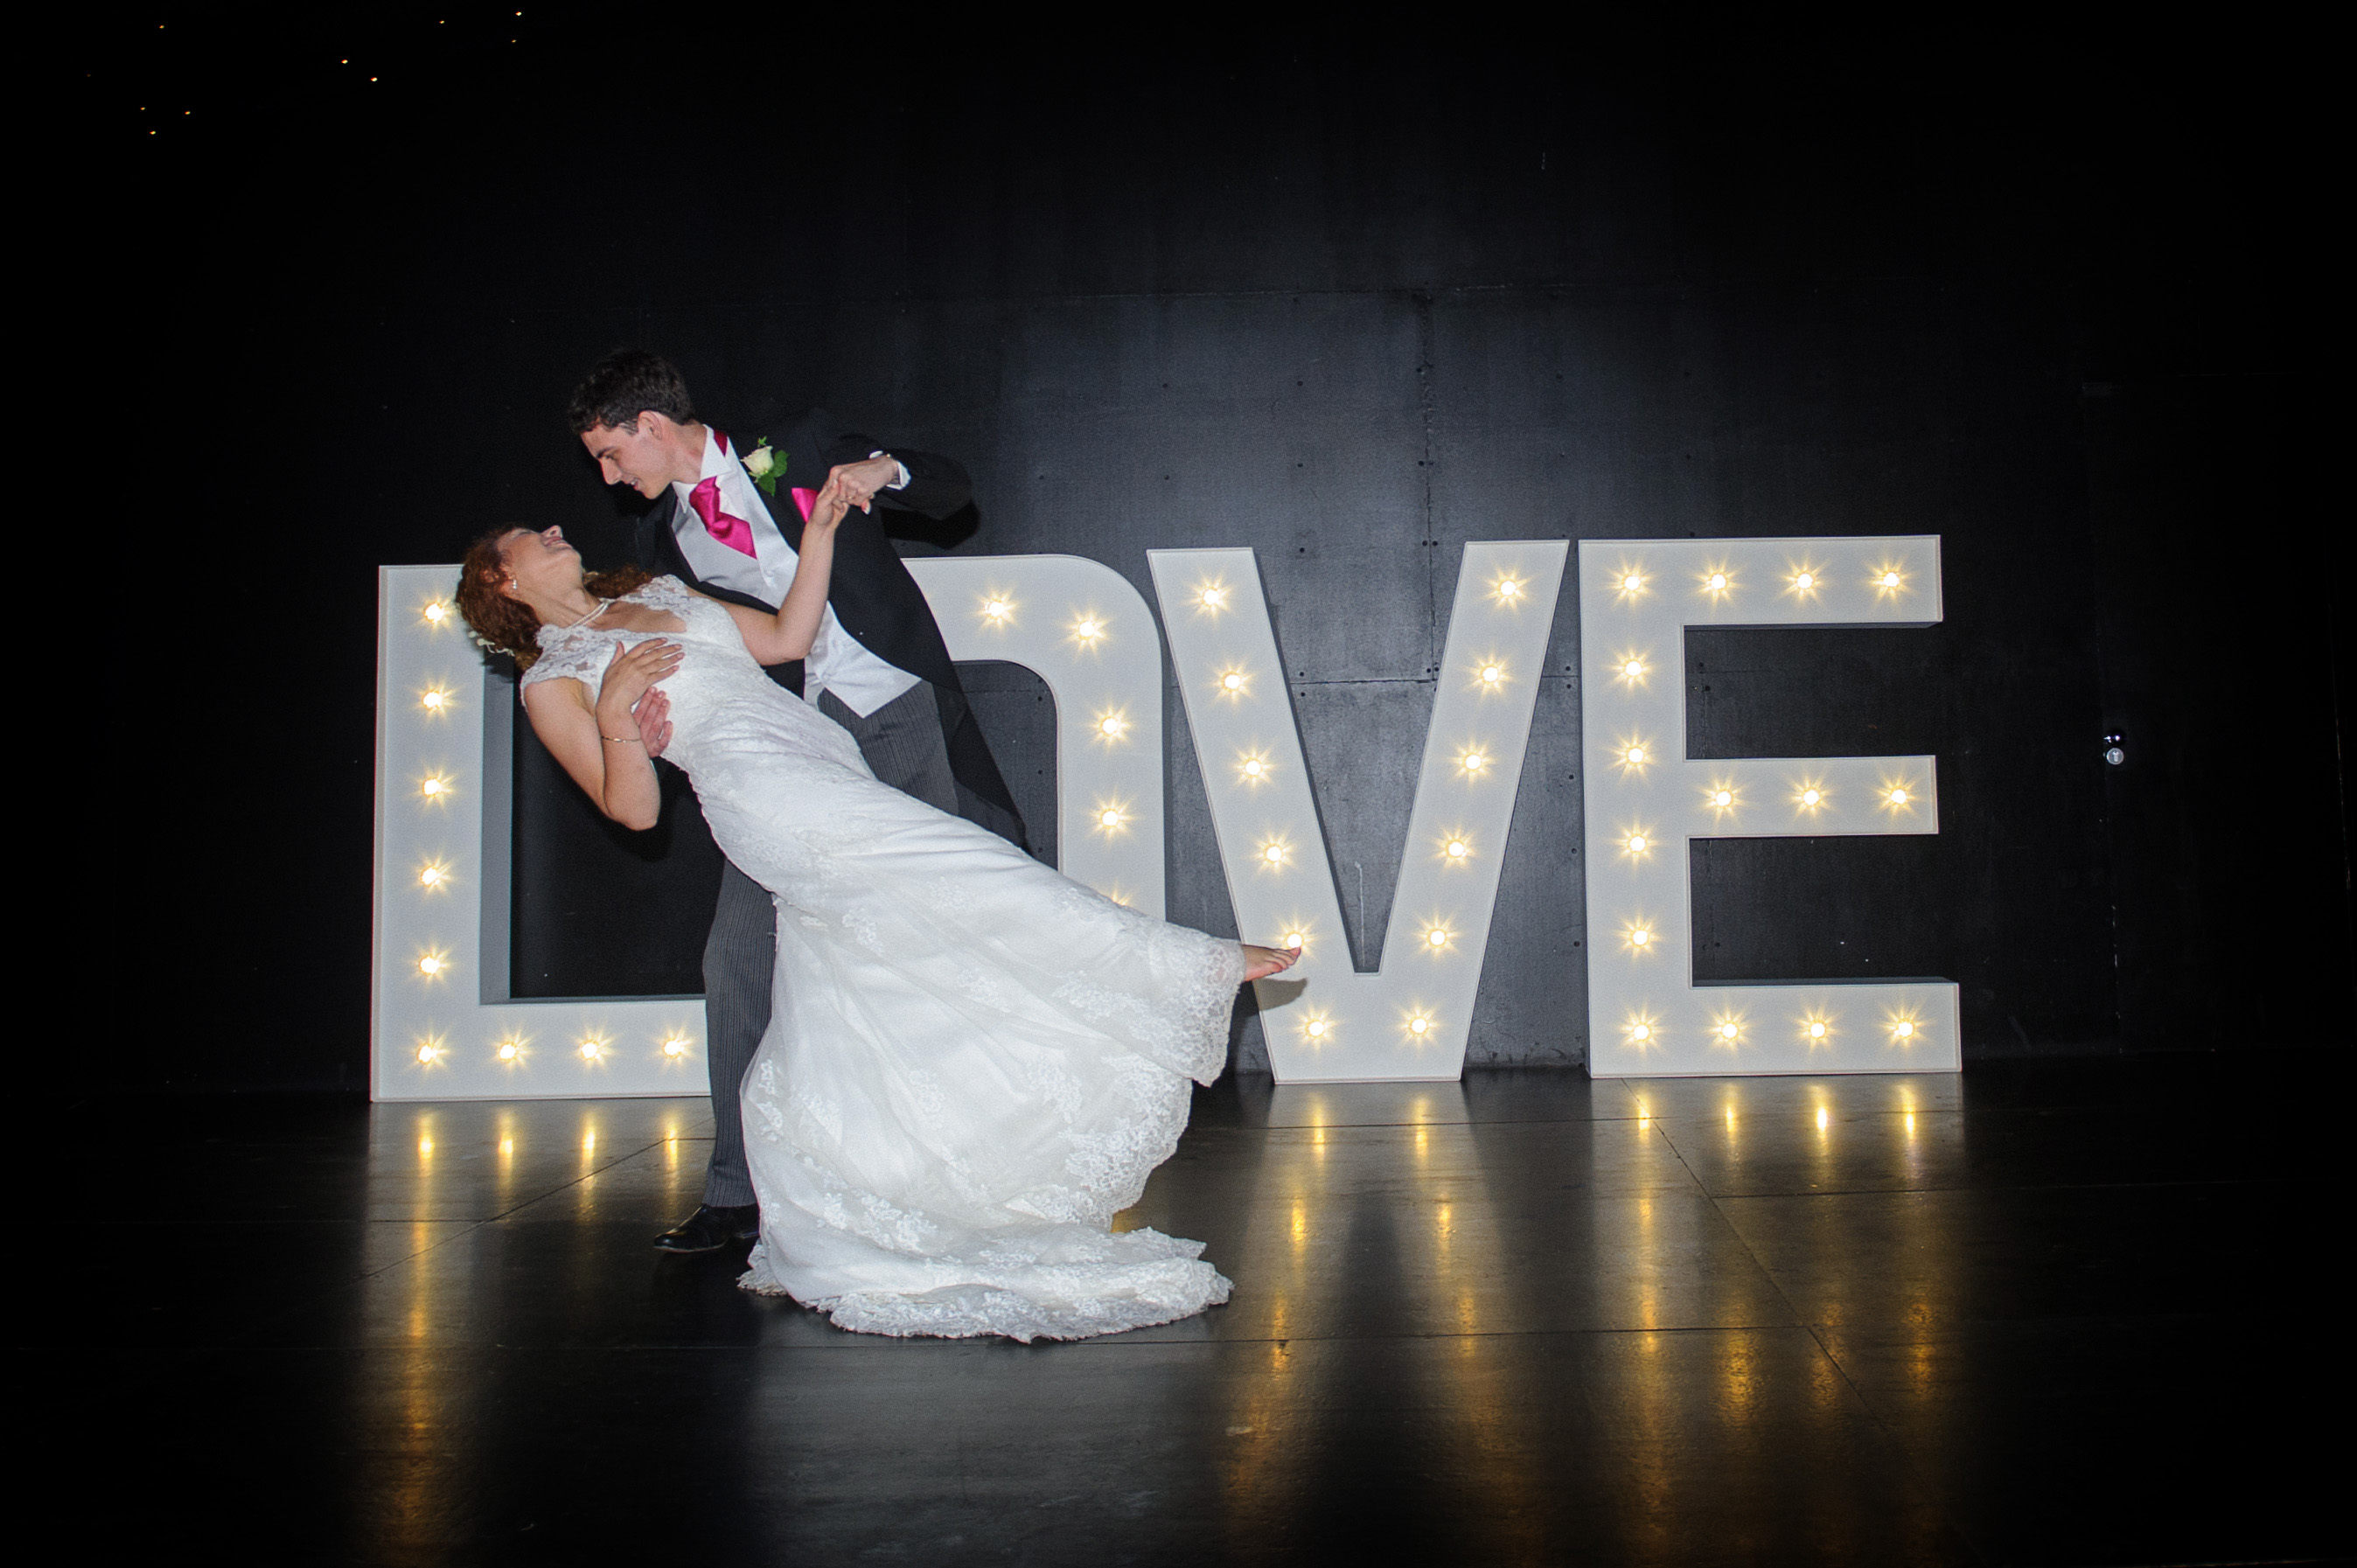 Rmw rates wedding day dance uk rock my wedding uk for Best day for a wedding